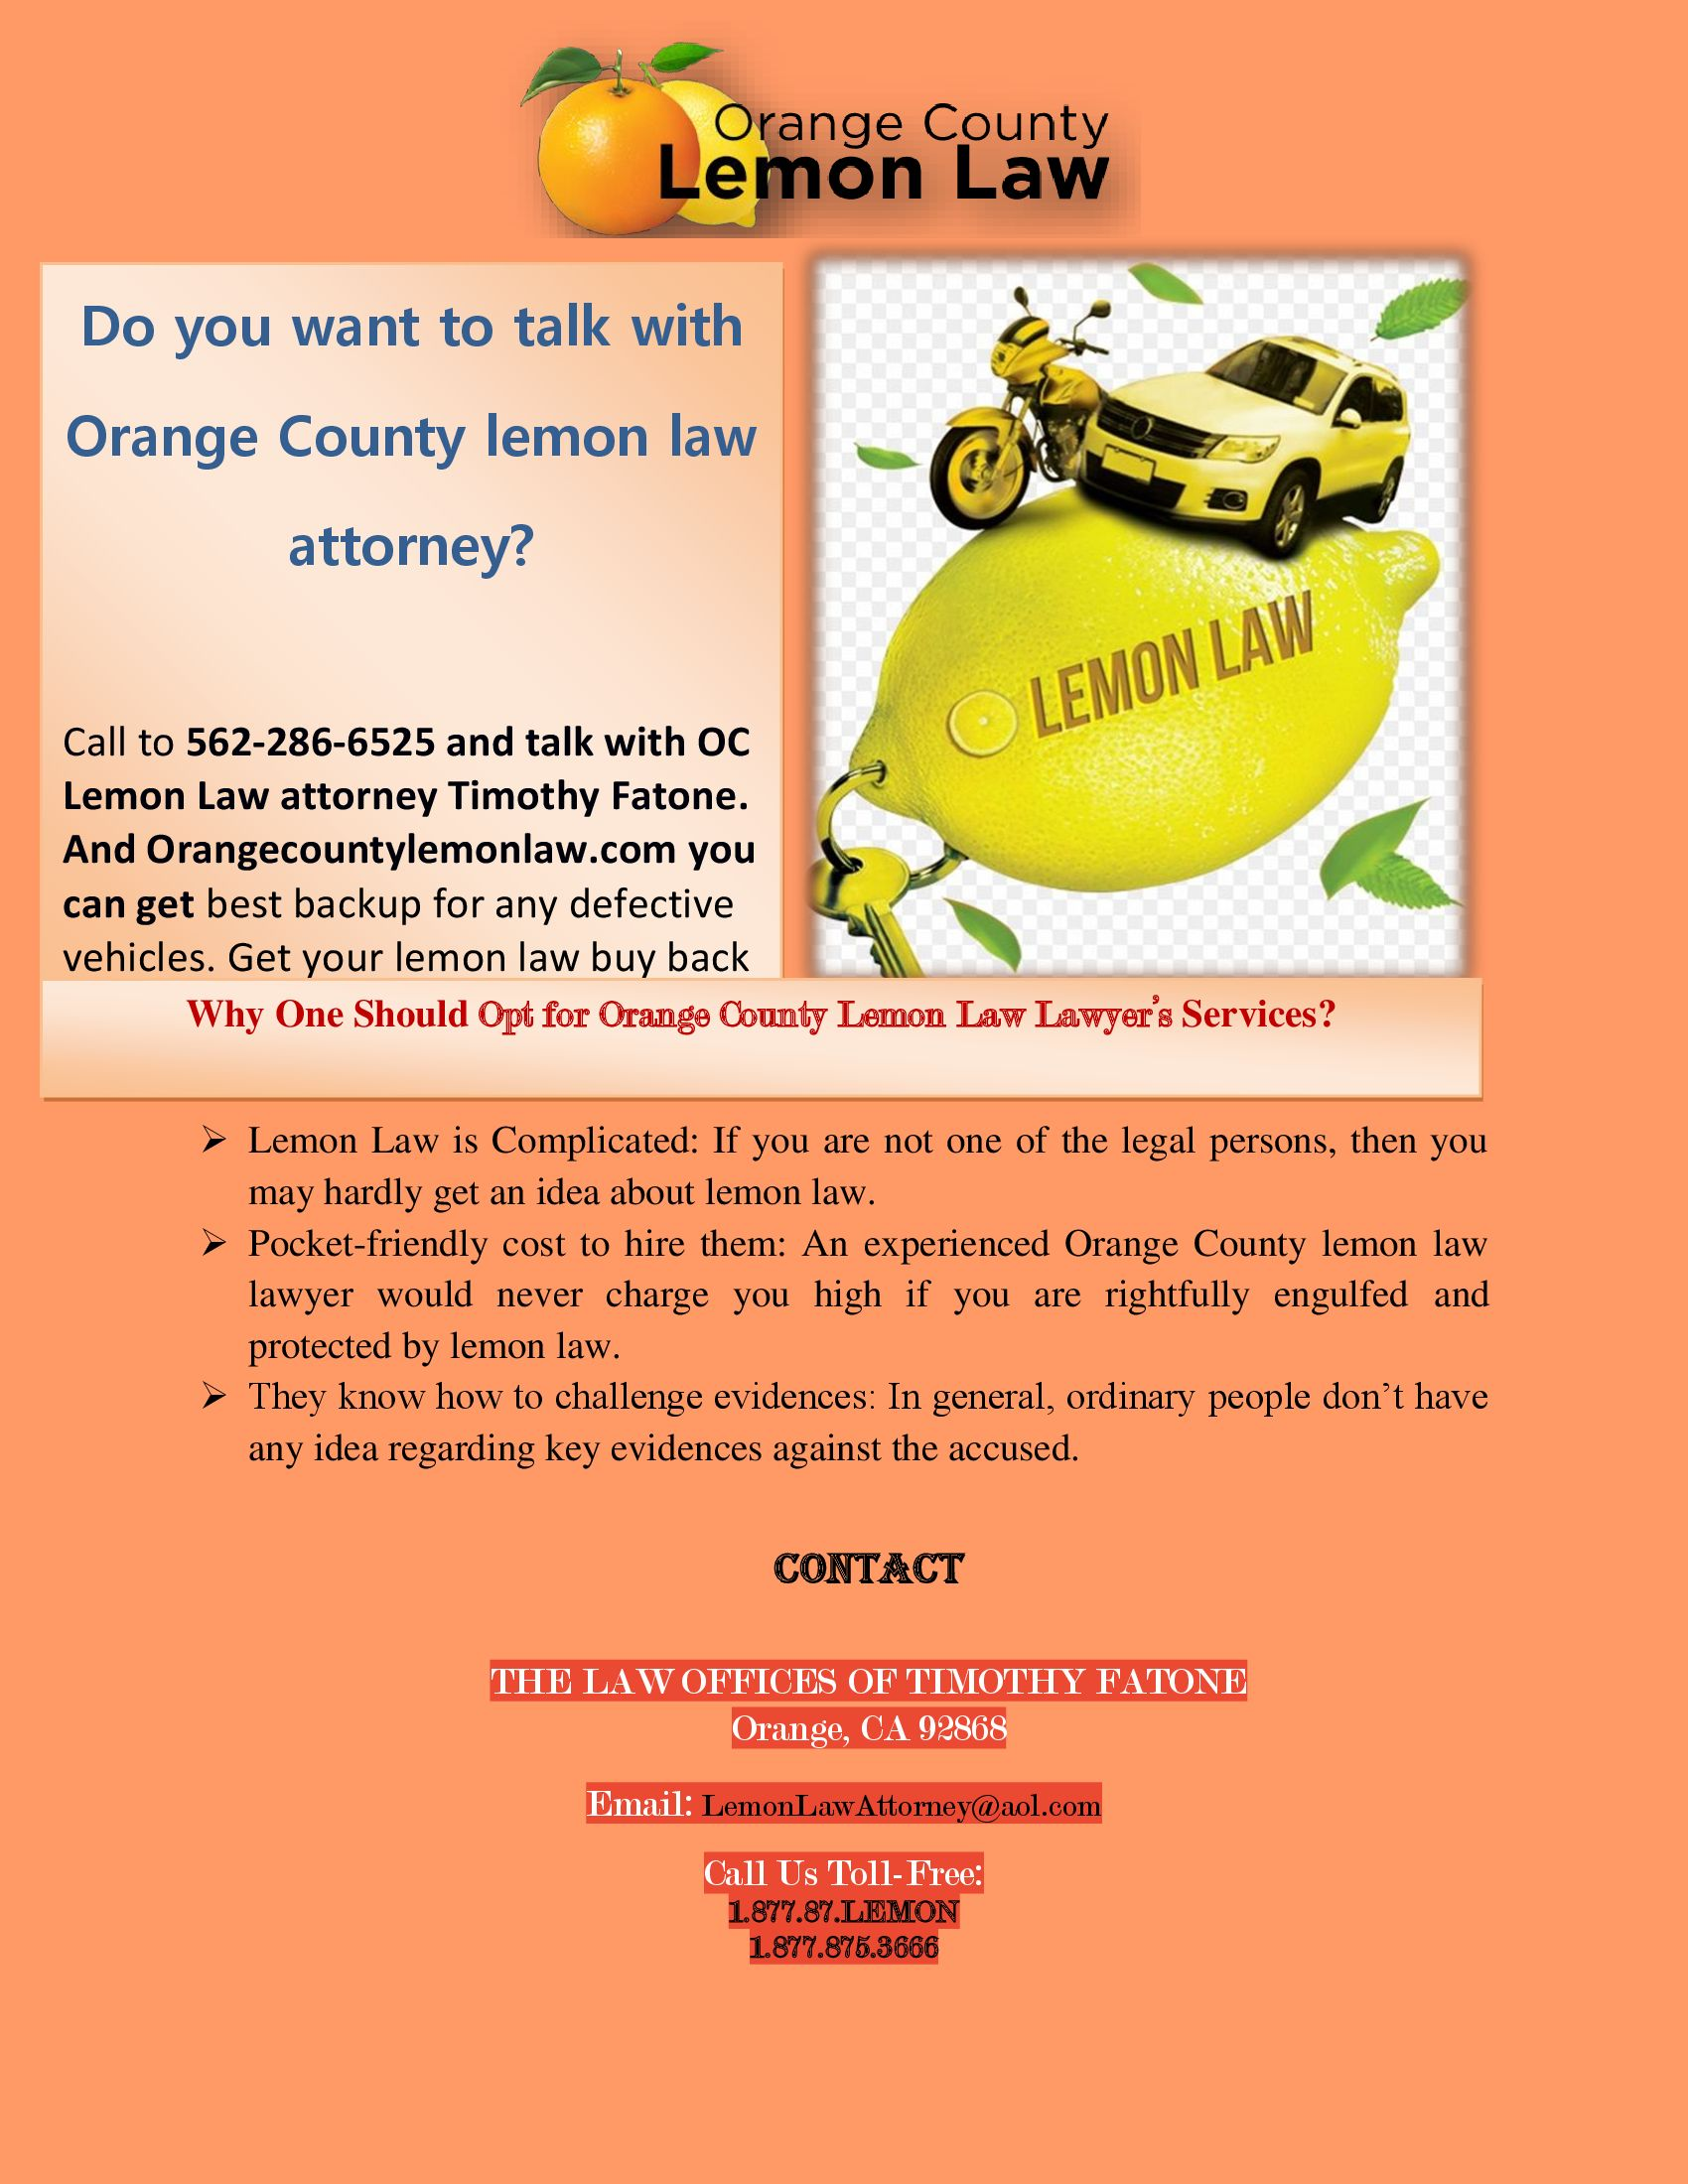 Orange County Lemon Law – Lemon lawyers for your Cars in California